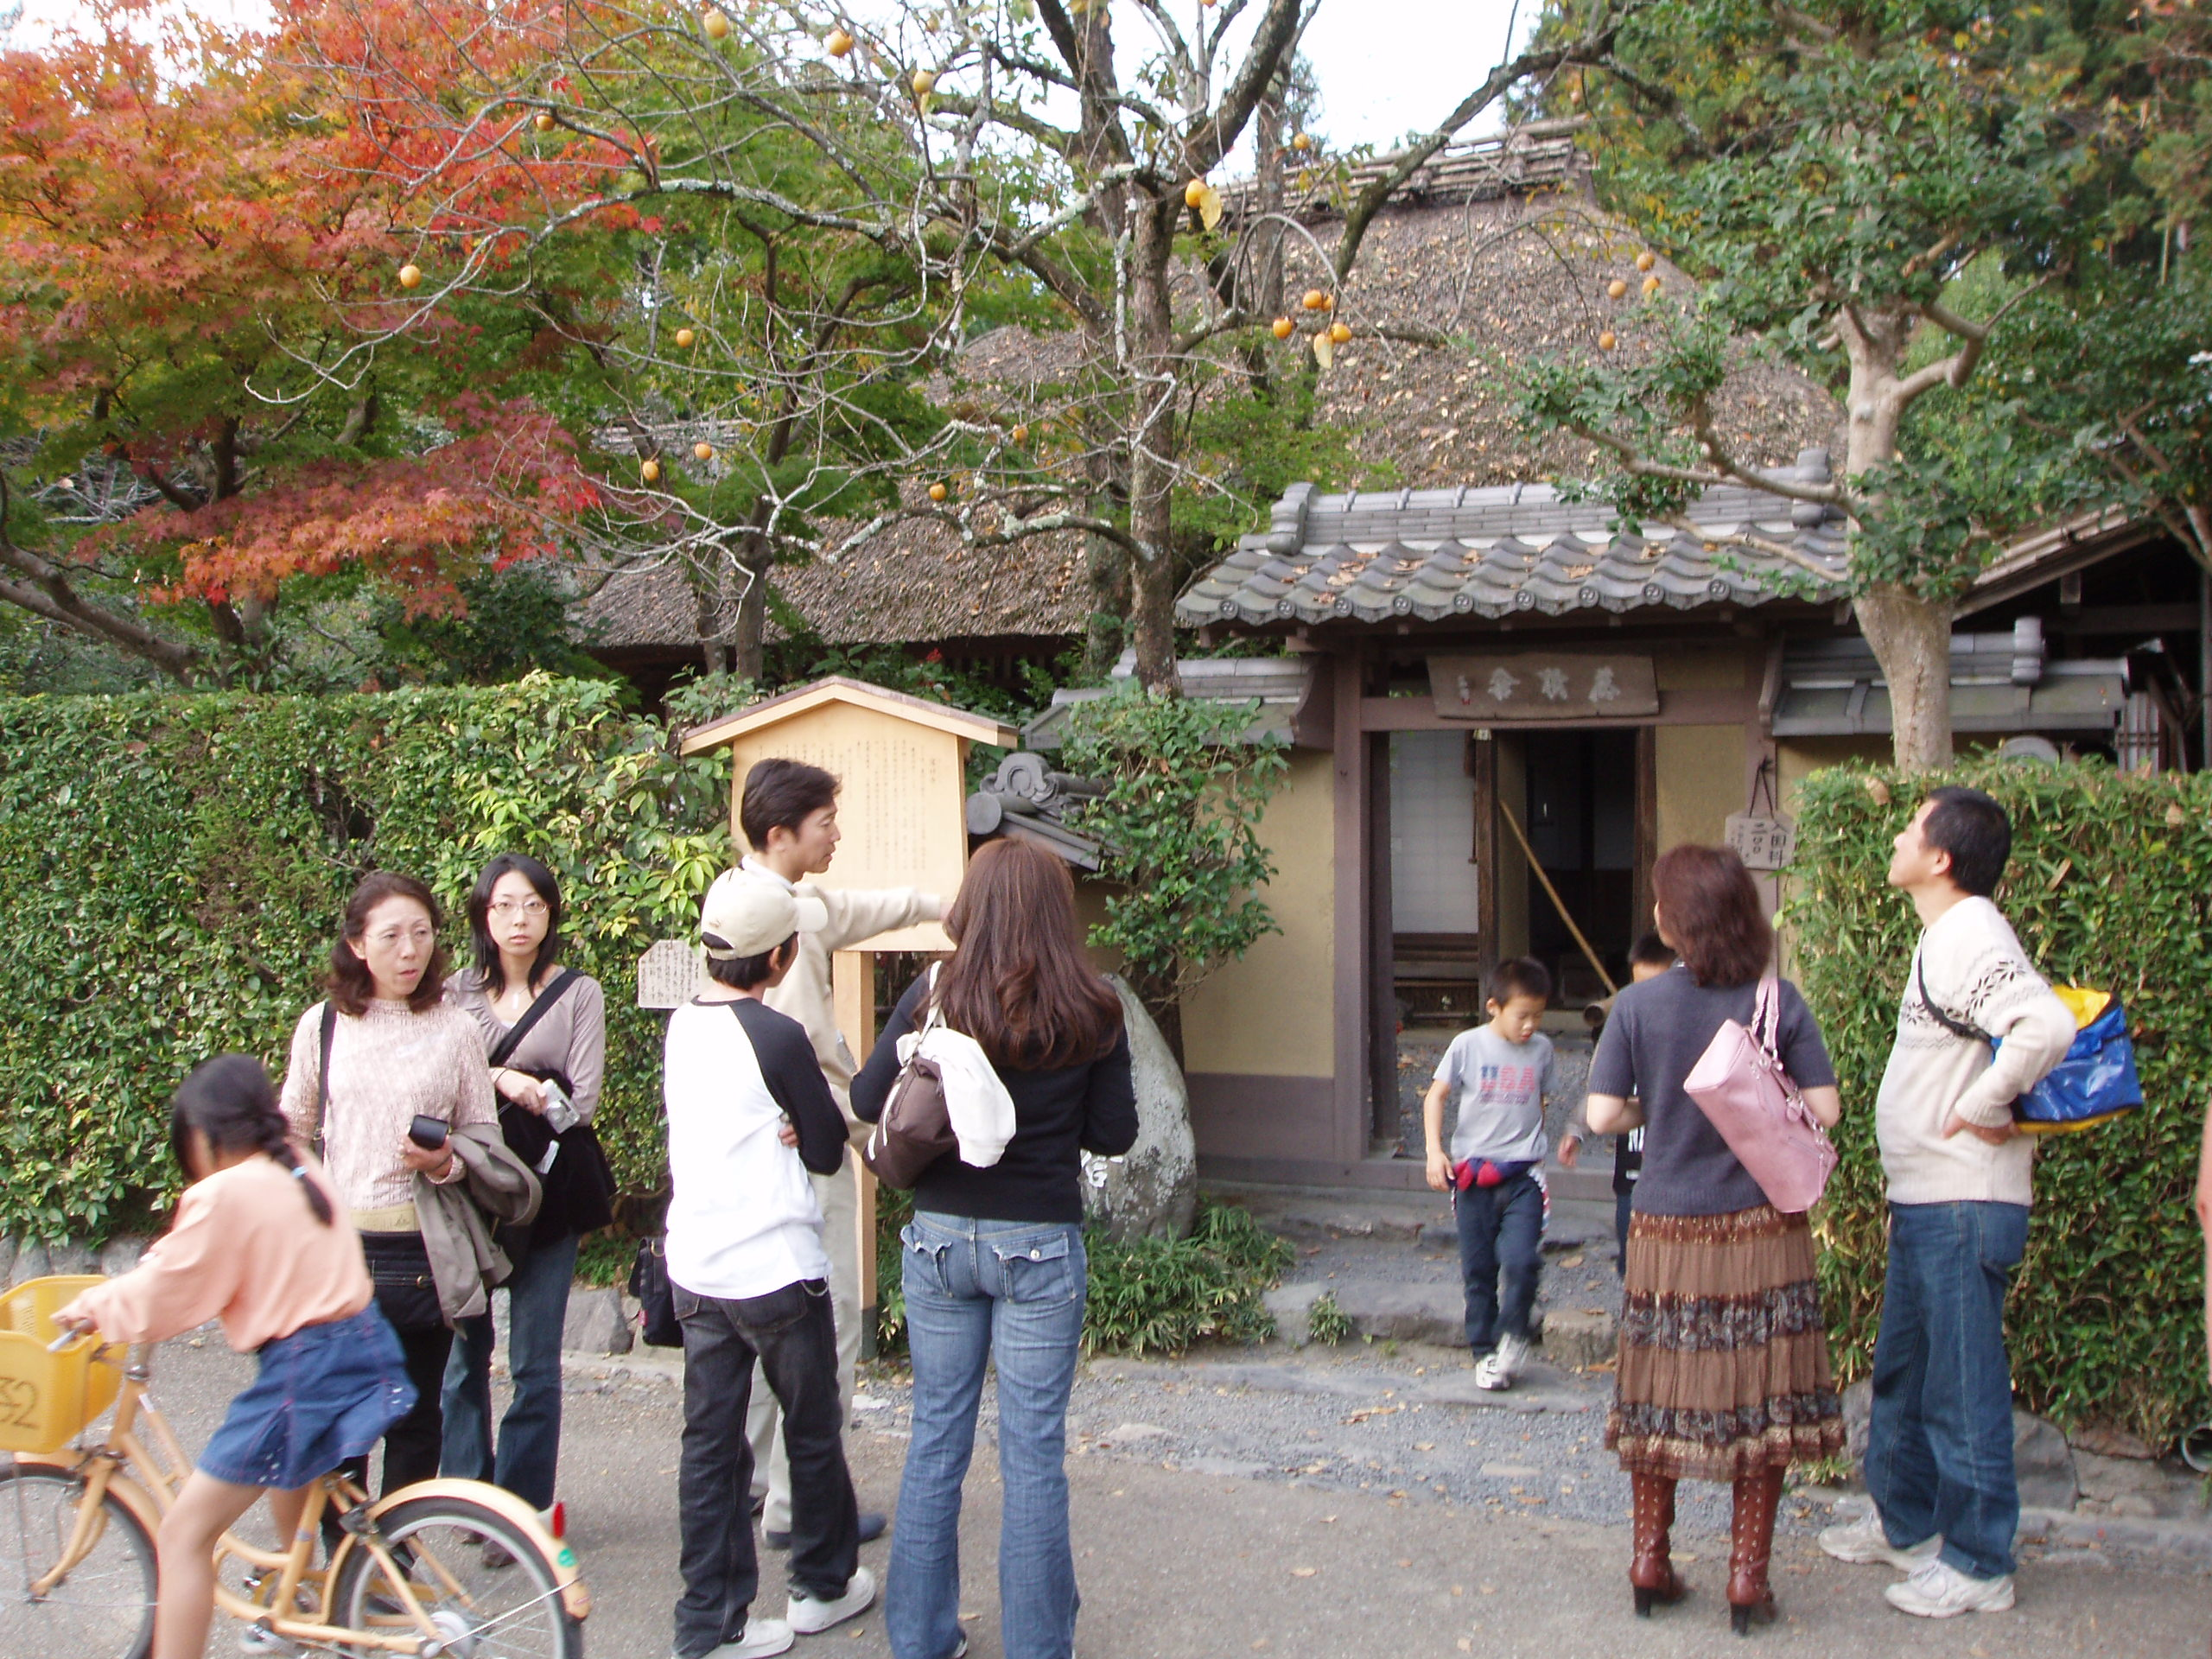 Rakushisha (Fallen Persimmons Hut) complete with persimmons – the hut where Basho stayed with his friend Kyorai in